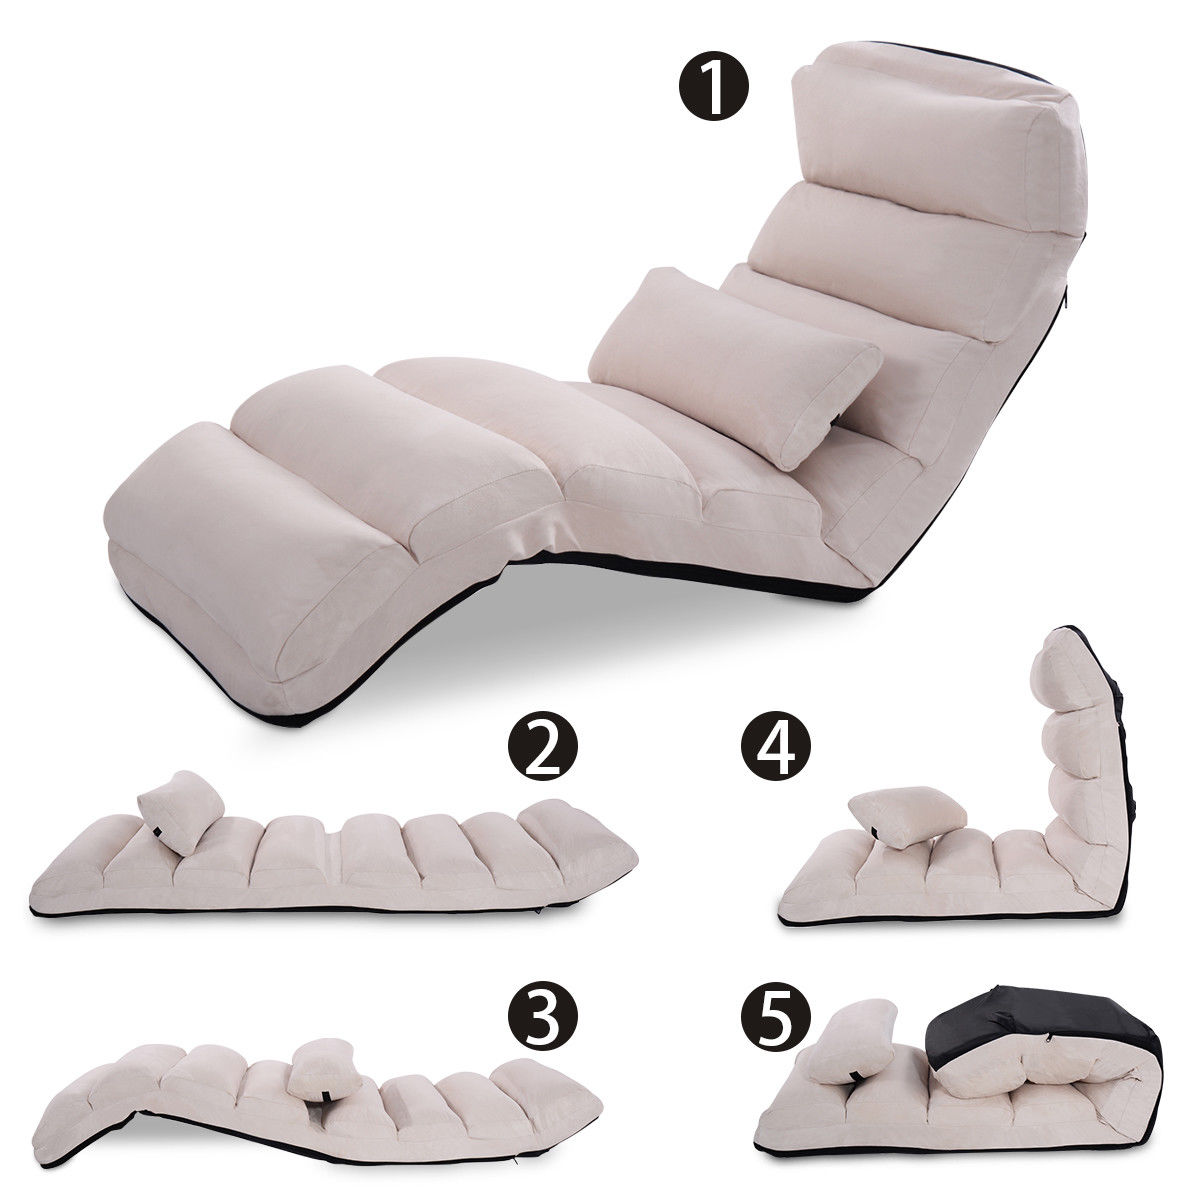 Groovy Costway Beige Folding Lazy Sofa Chair Stylish Sofa Couch Gamerscity Chair Design For Home Gamerscityorg